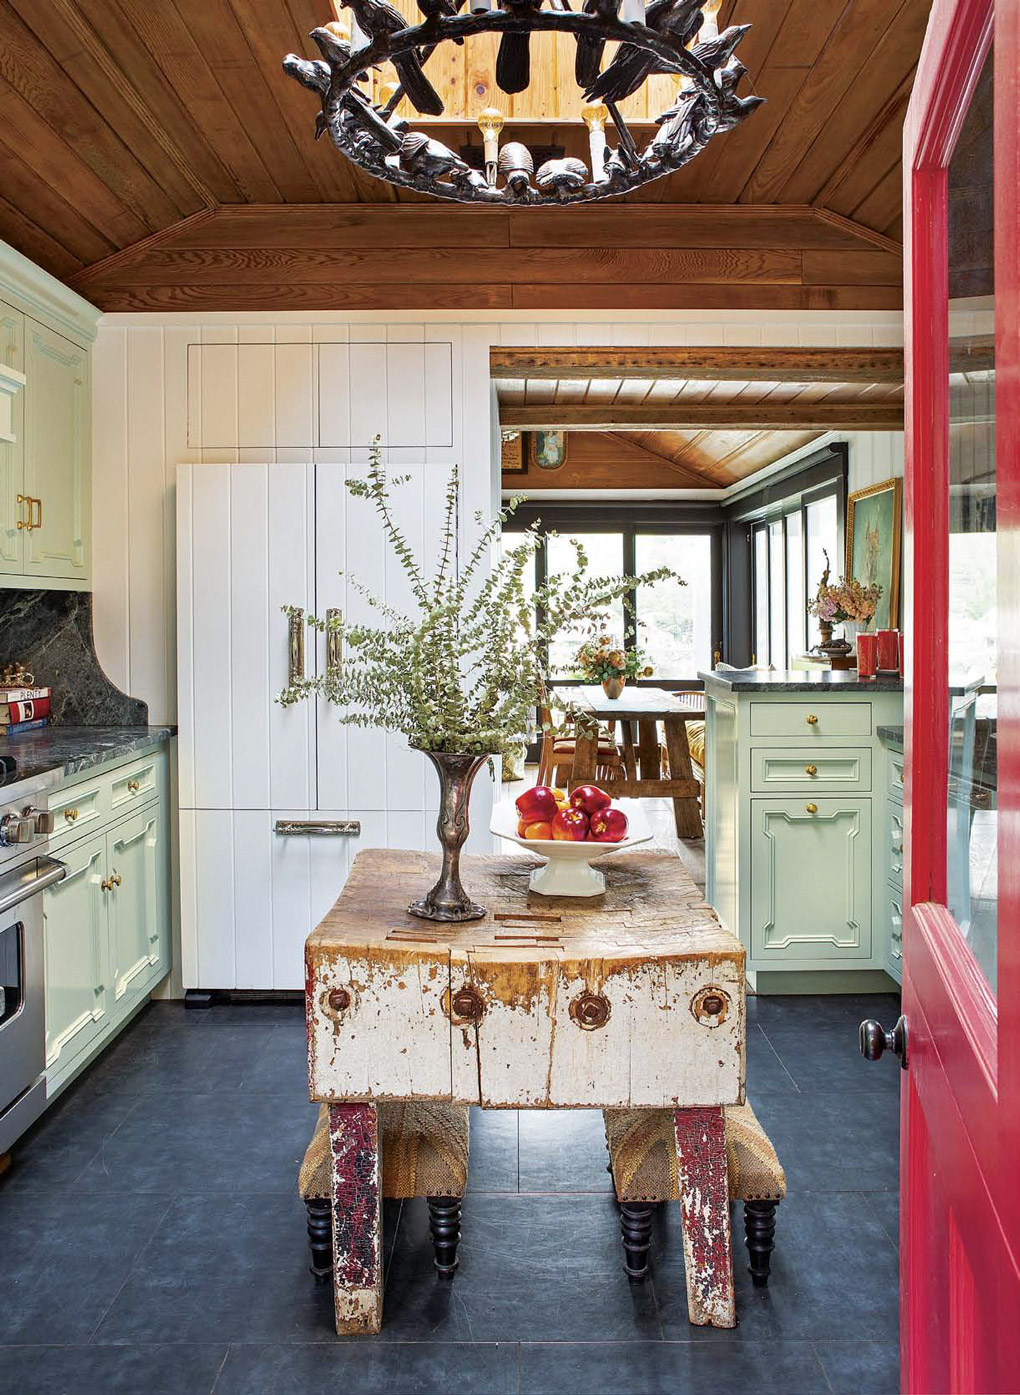 Bright red door opening into a cottage kitchen with rustic vintage island and light aqua cabinetry.